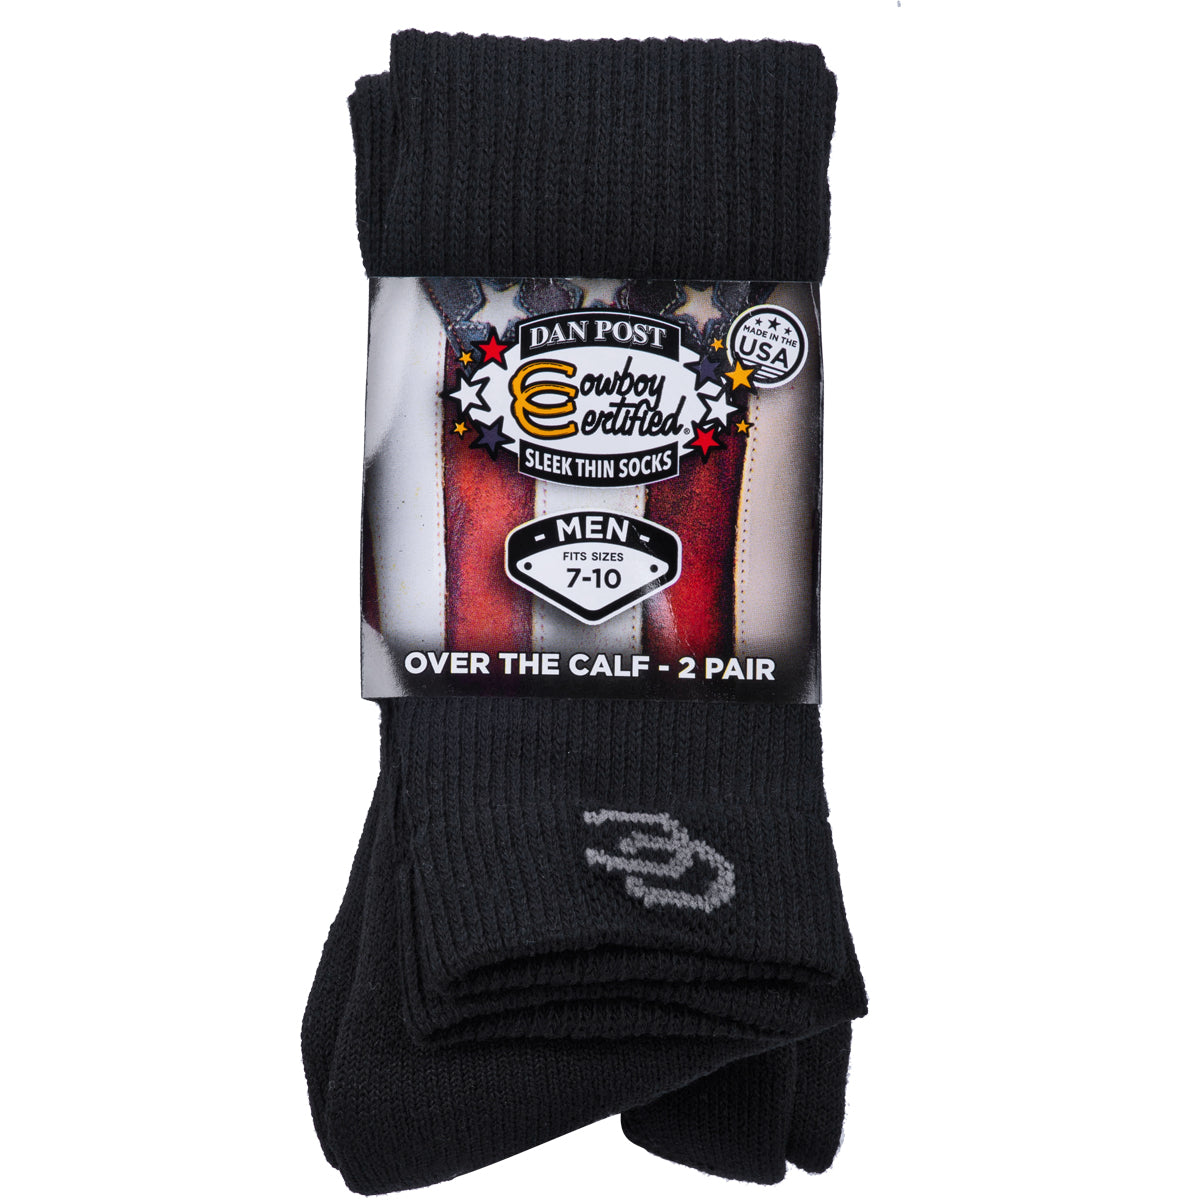 OVER THE CALF LITE SOCKS 13180297838634